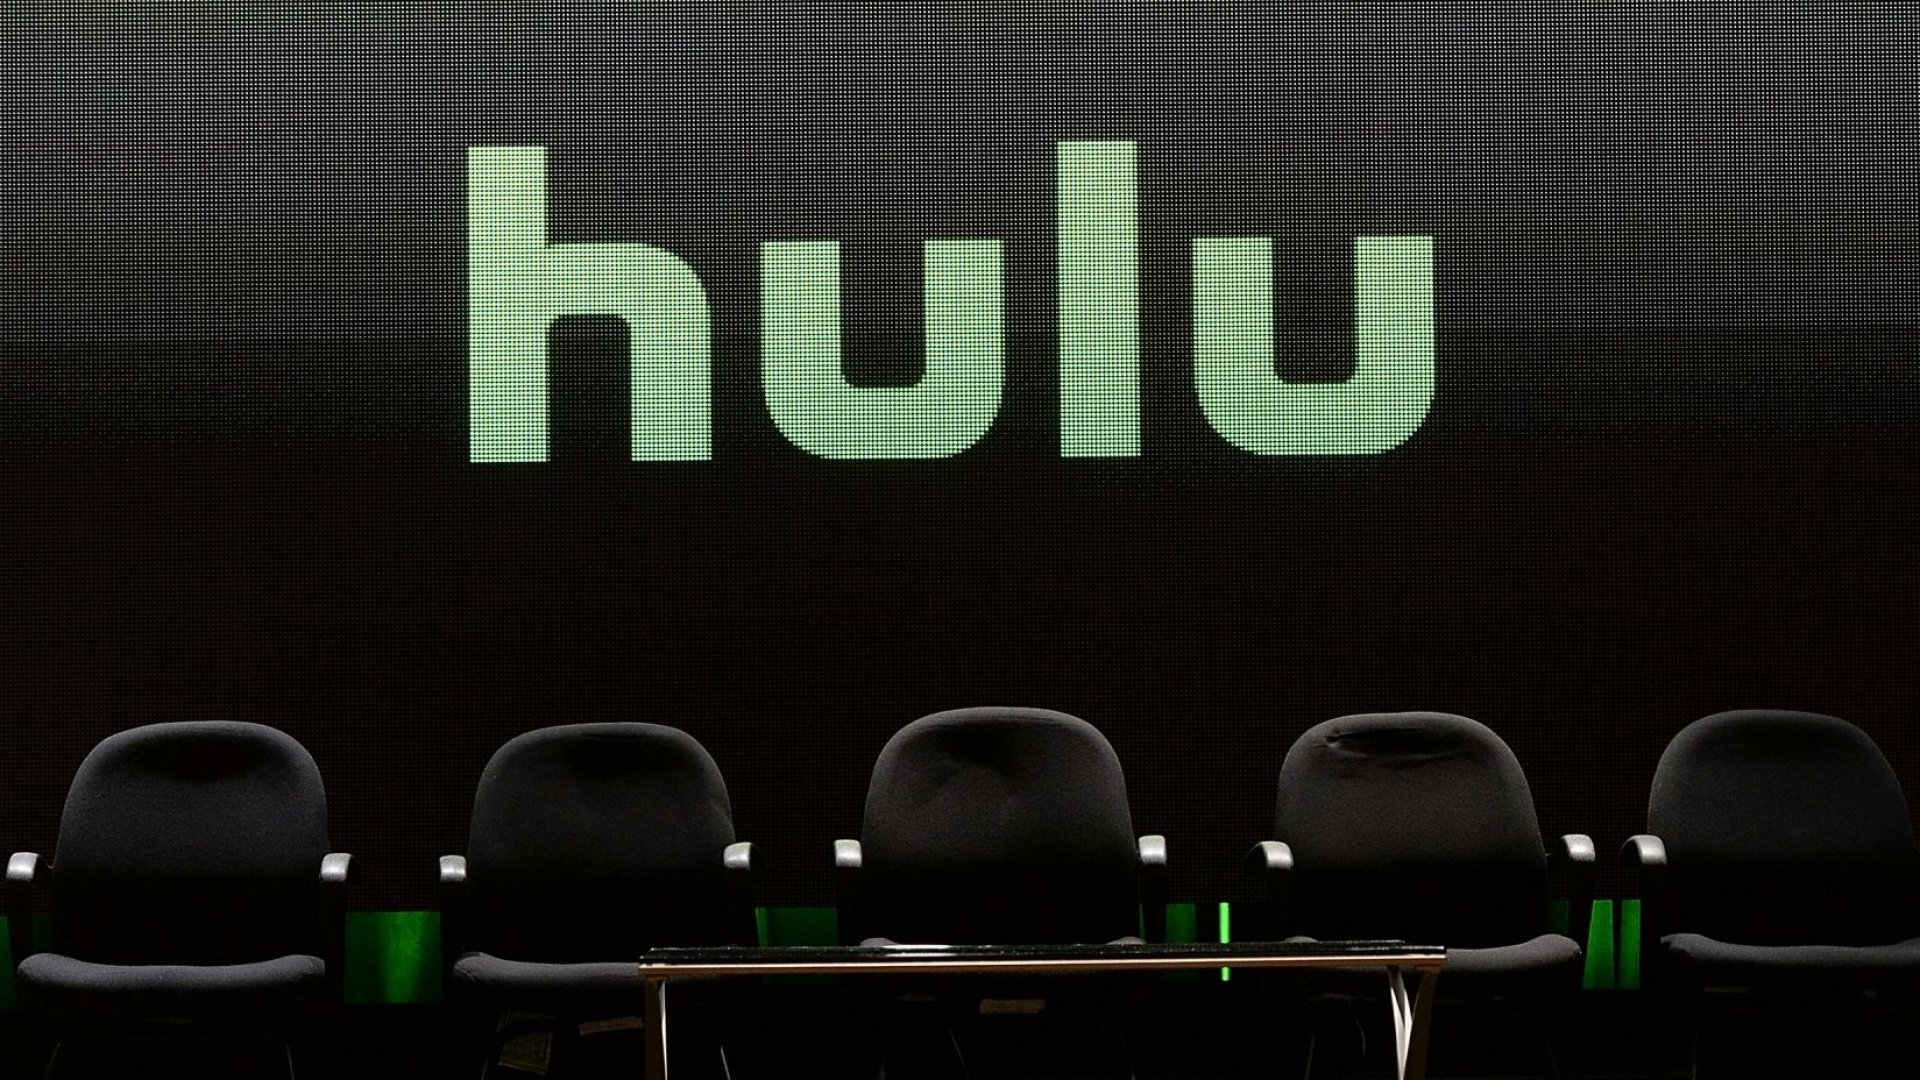 Disney Has a Huge Problem With Hulu Showing Inappropriate and Mature Content to Children